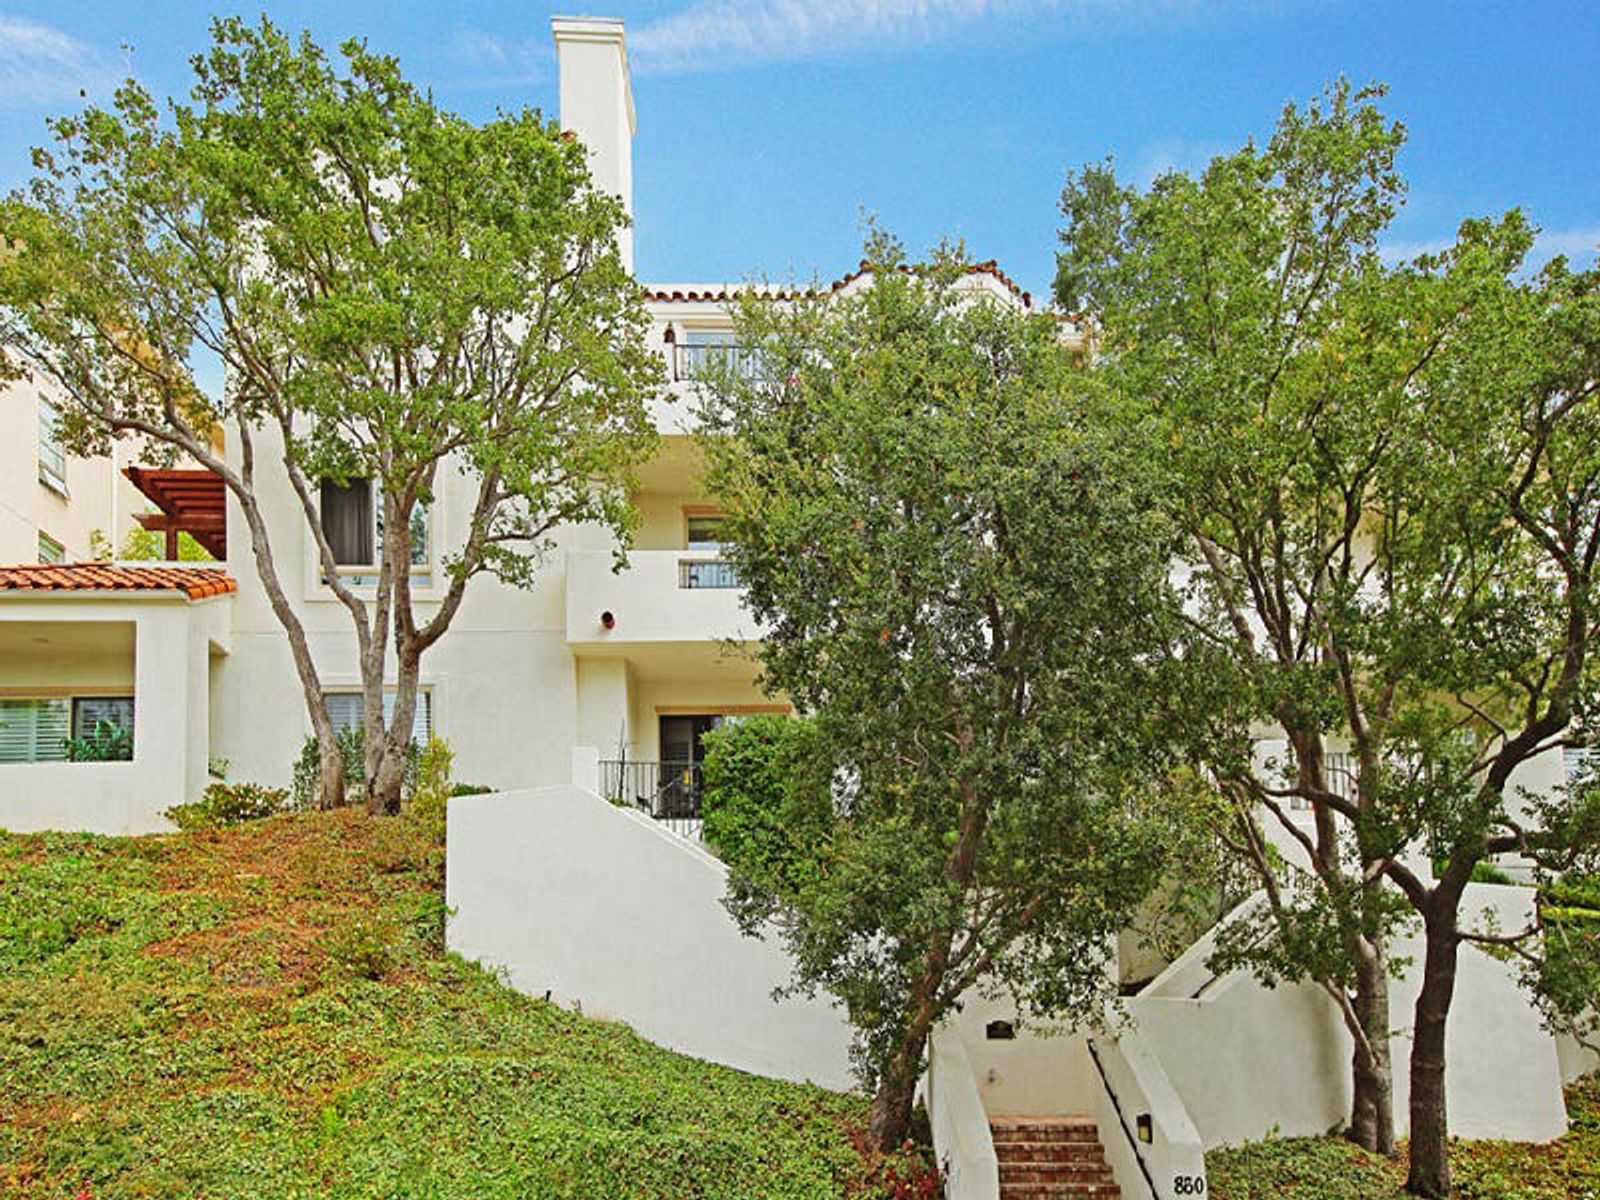 Beautiful Condo in Luxury Building, Pacific Palisades CA Condominium - Los Angeles Real Estate